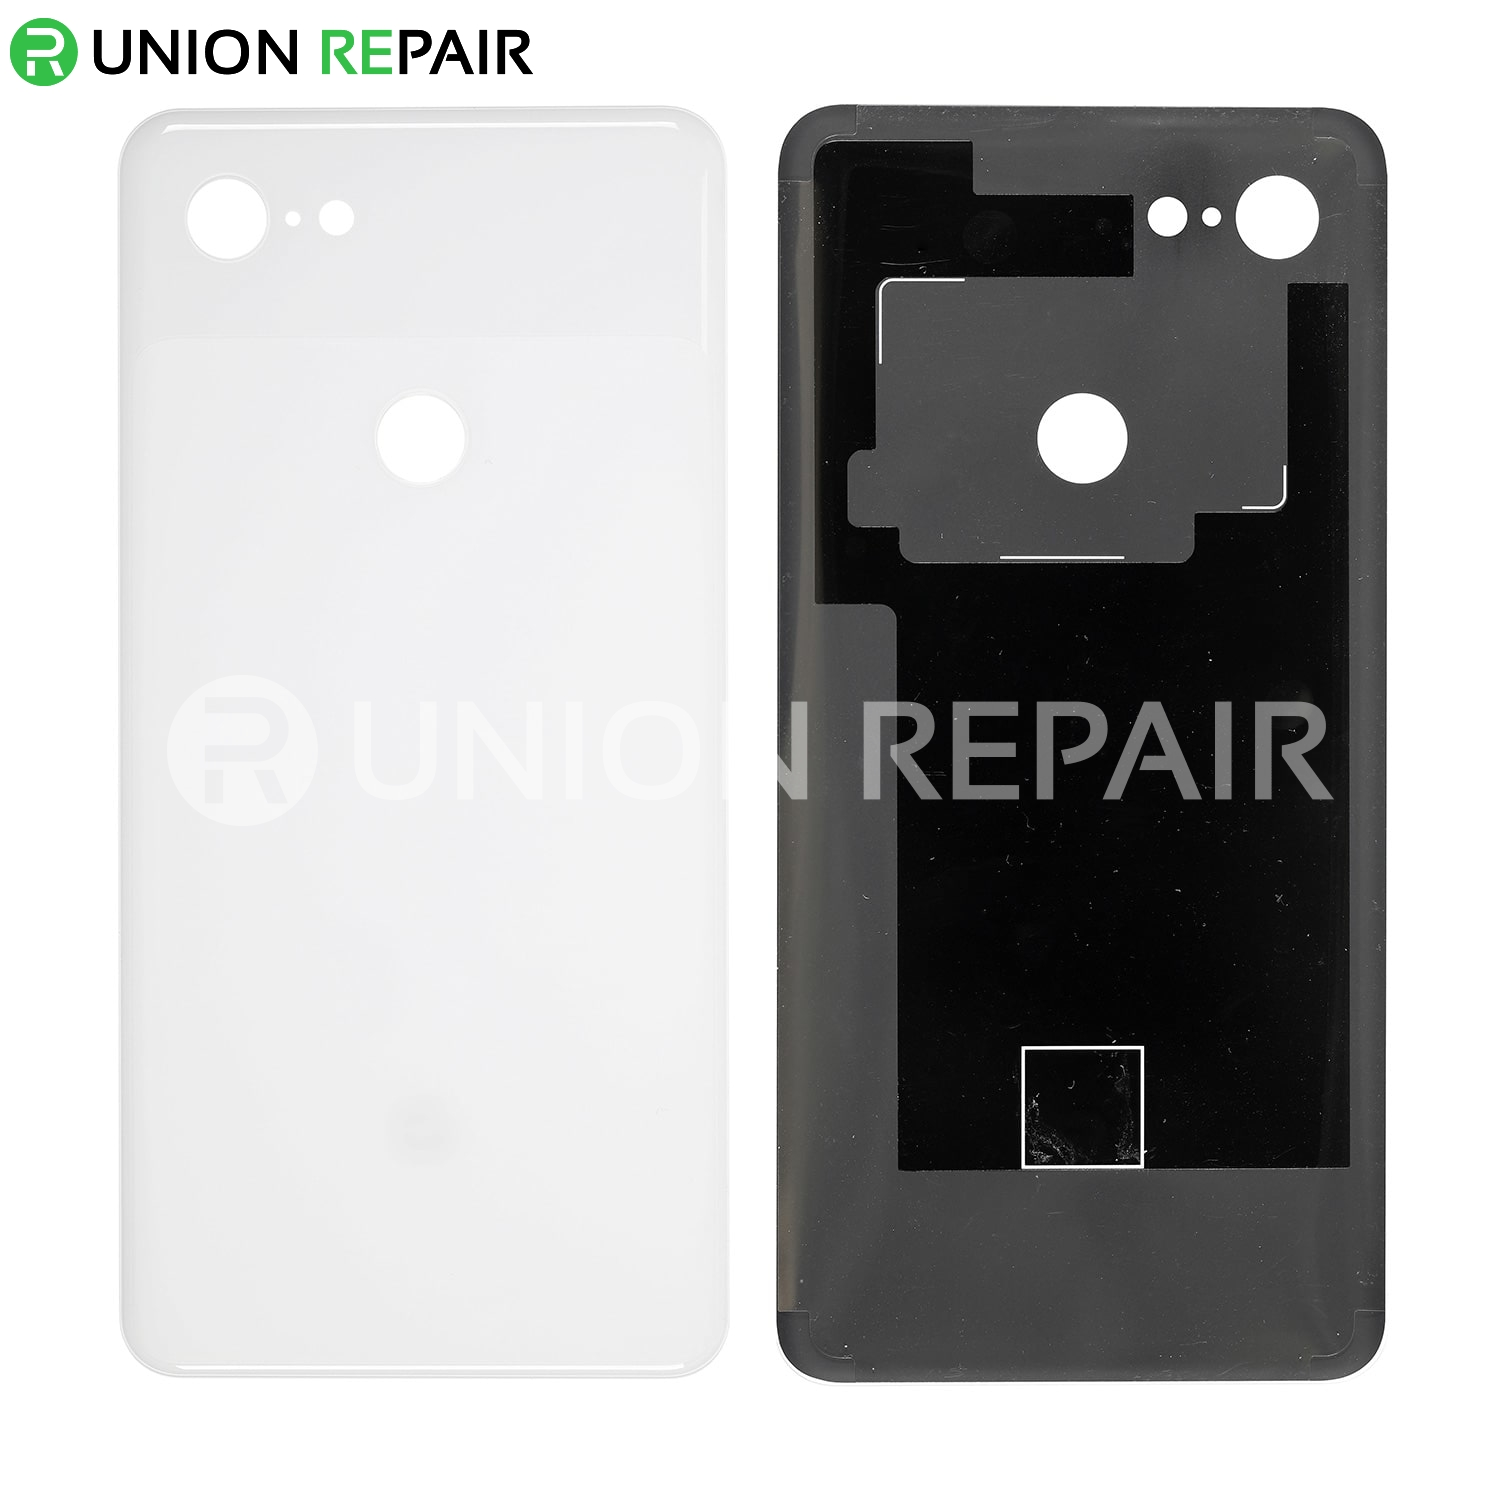 Replacement for Google Pixel 3 XL Back Cover - White